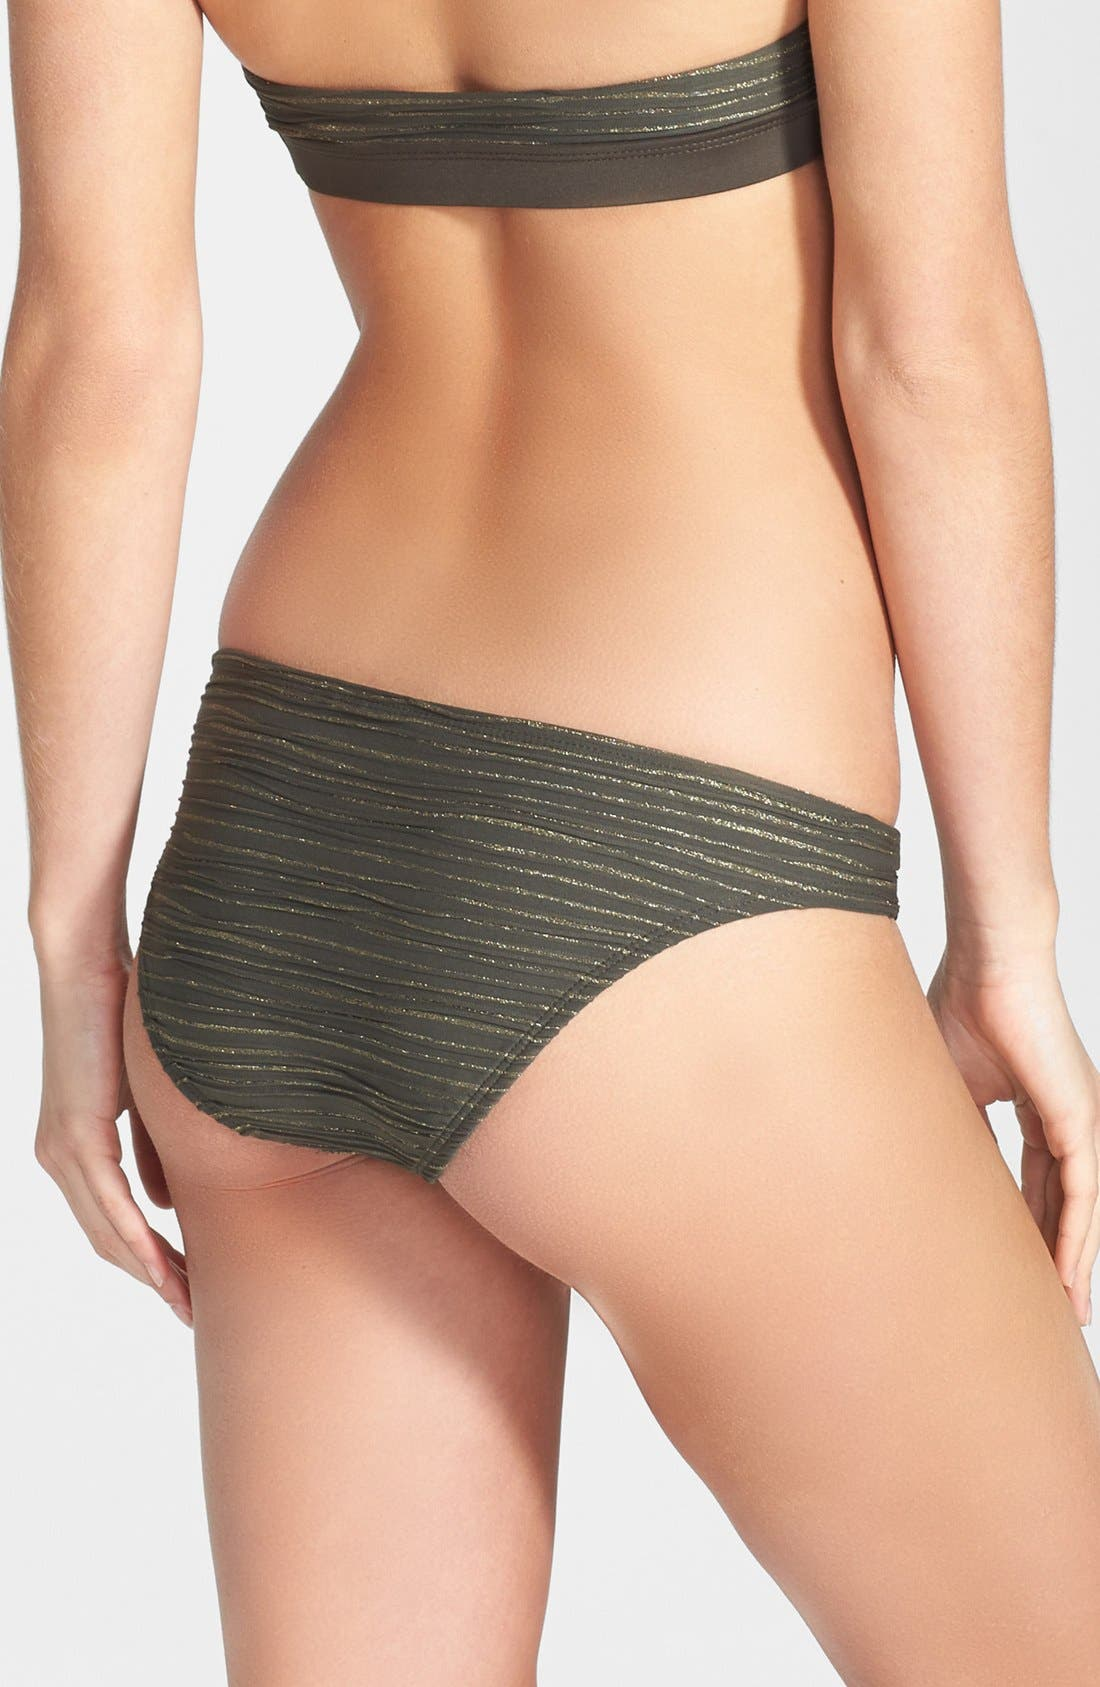 Alternate Image 2  - Vitamin A® 'Neutra' Hipster Full Coverage Bikini Bottoms